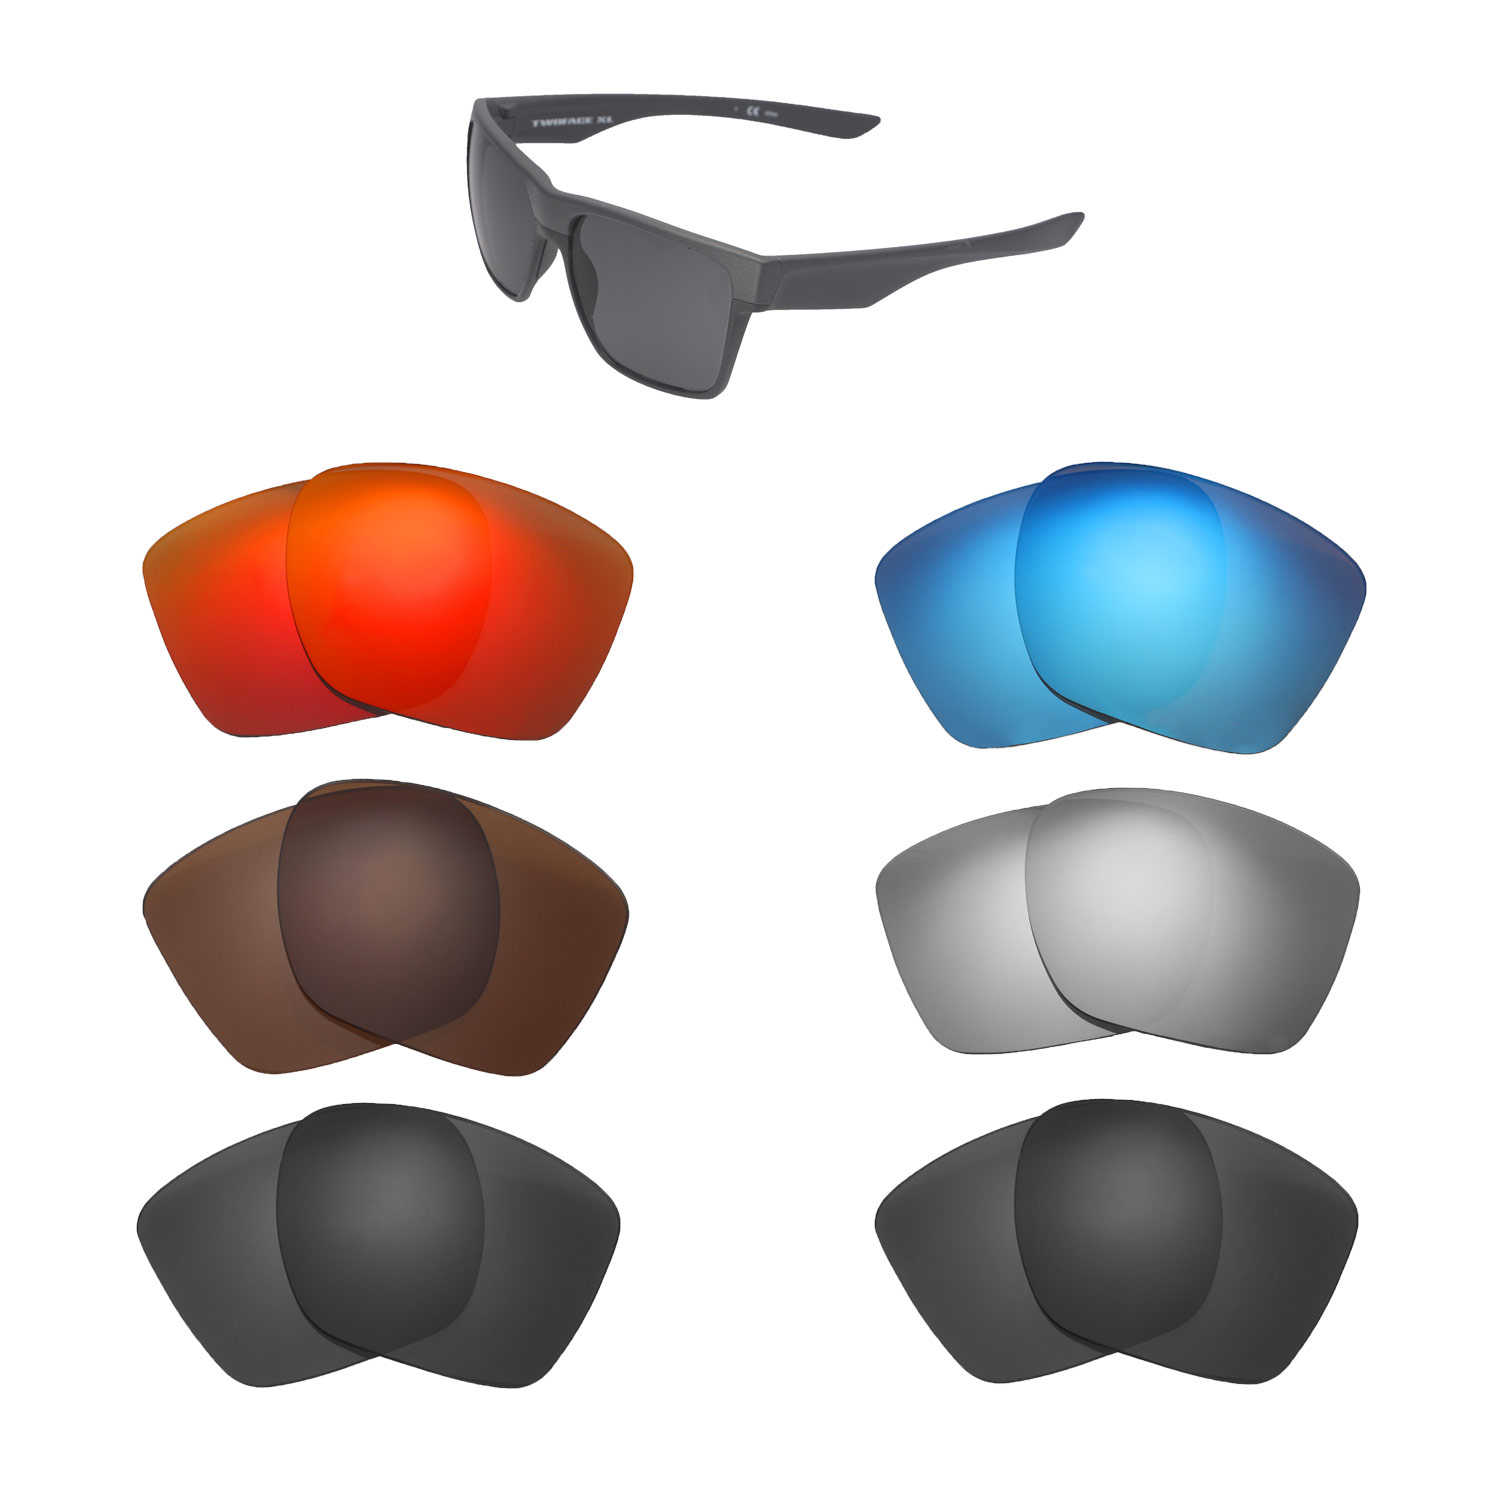 1f47e61452 Details about Walleva Replacement Lenses for Oakley TwoFace XL Sunglasses - Multiple  Options